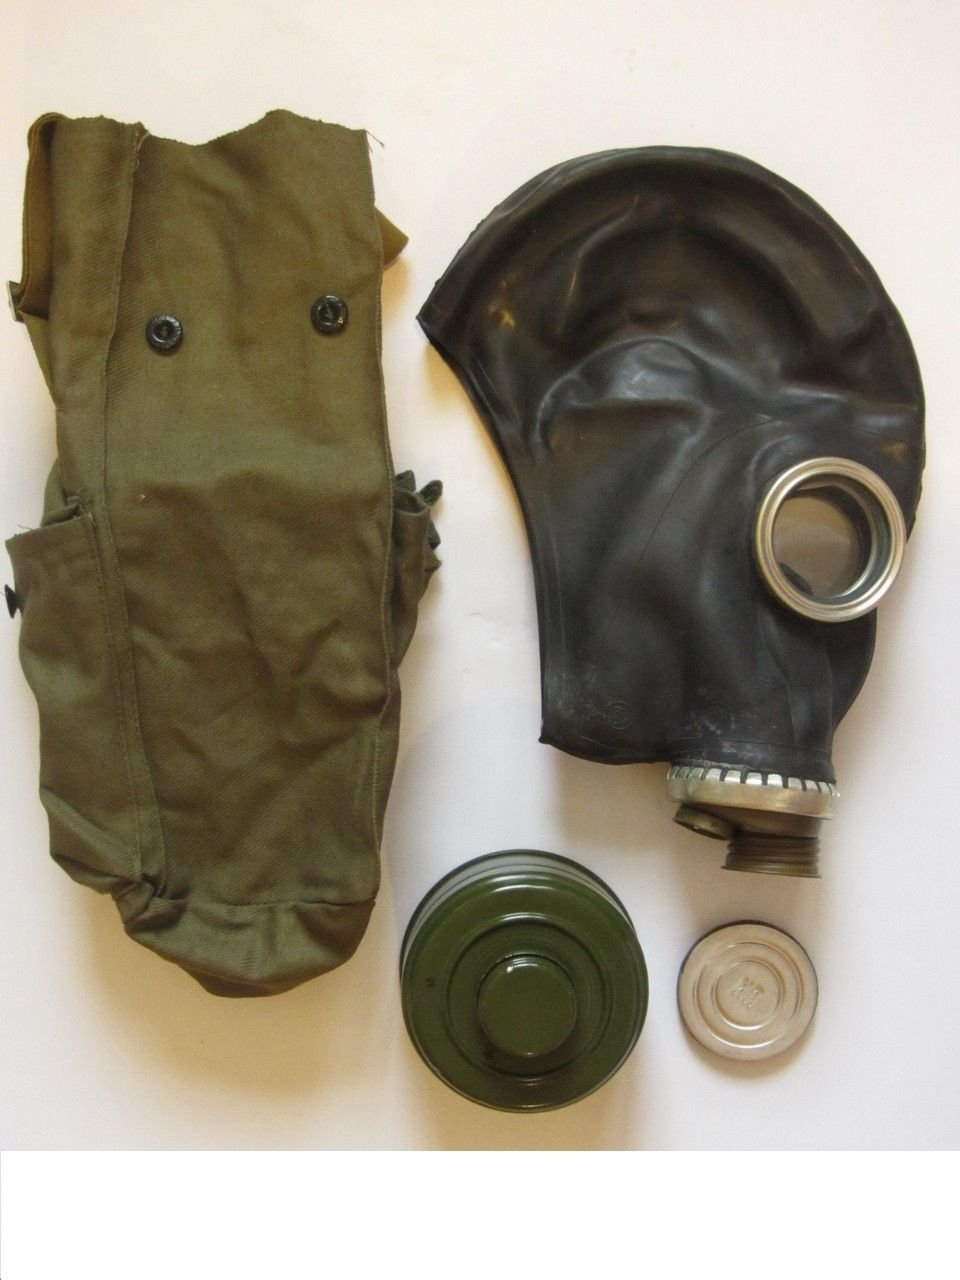 GP-5 Original Soviet Civilian Protective Gas Mask (activated Charcoal filter and bag included) (Large, white) - - Amazon.com